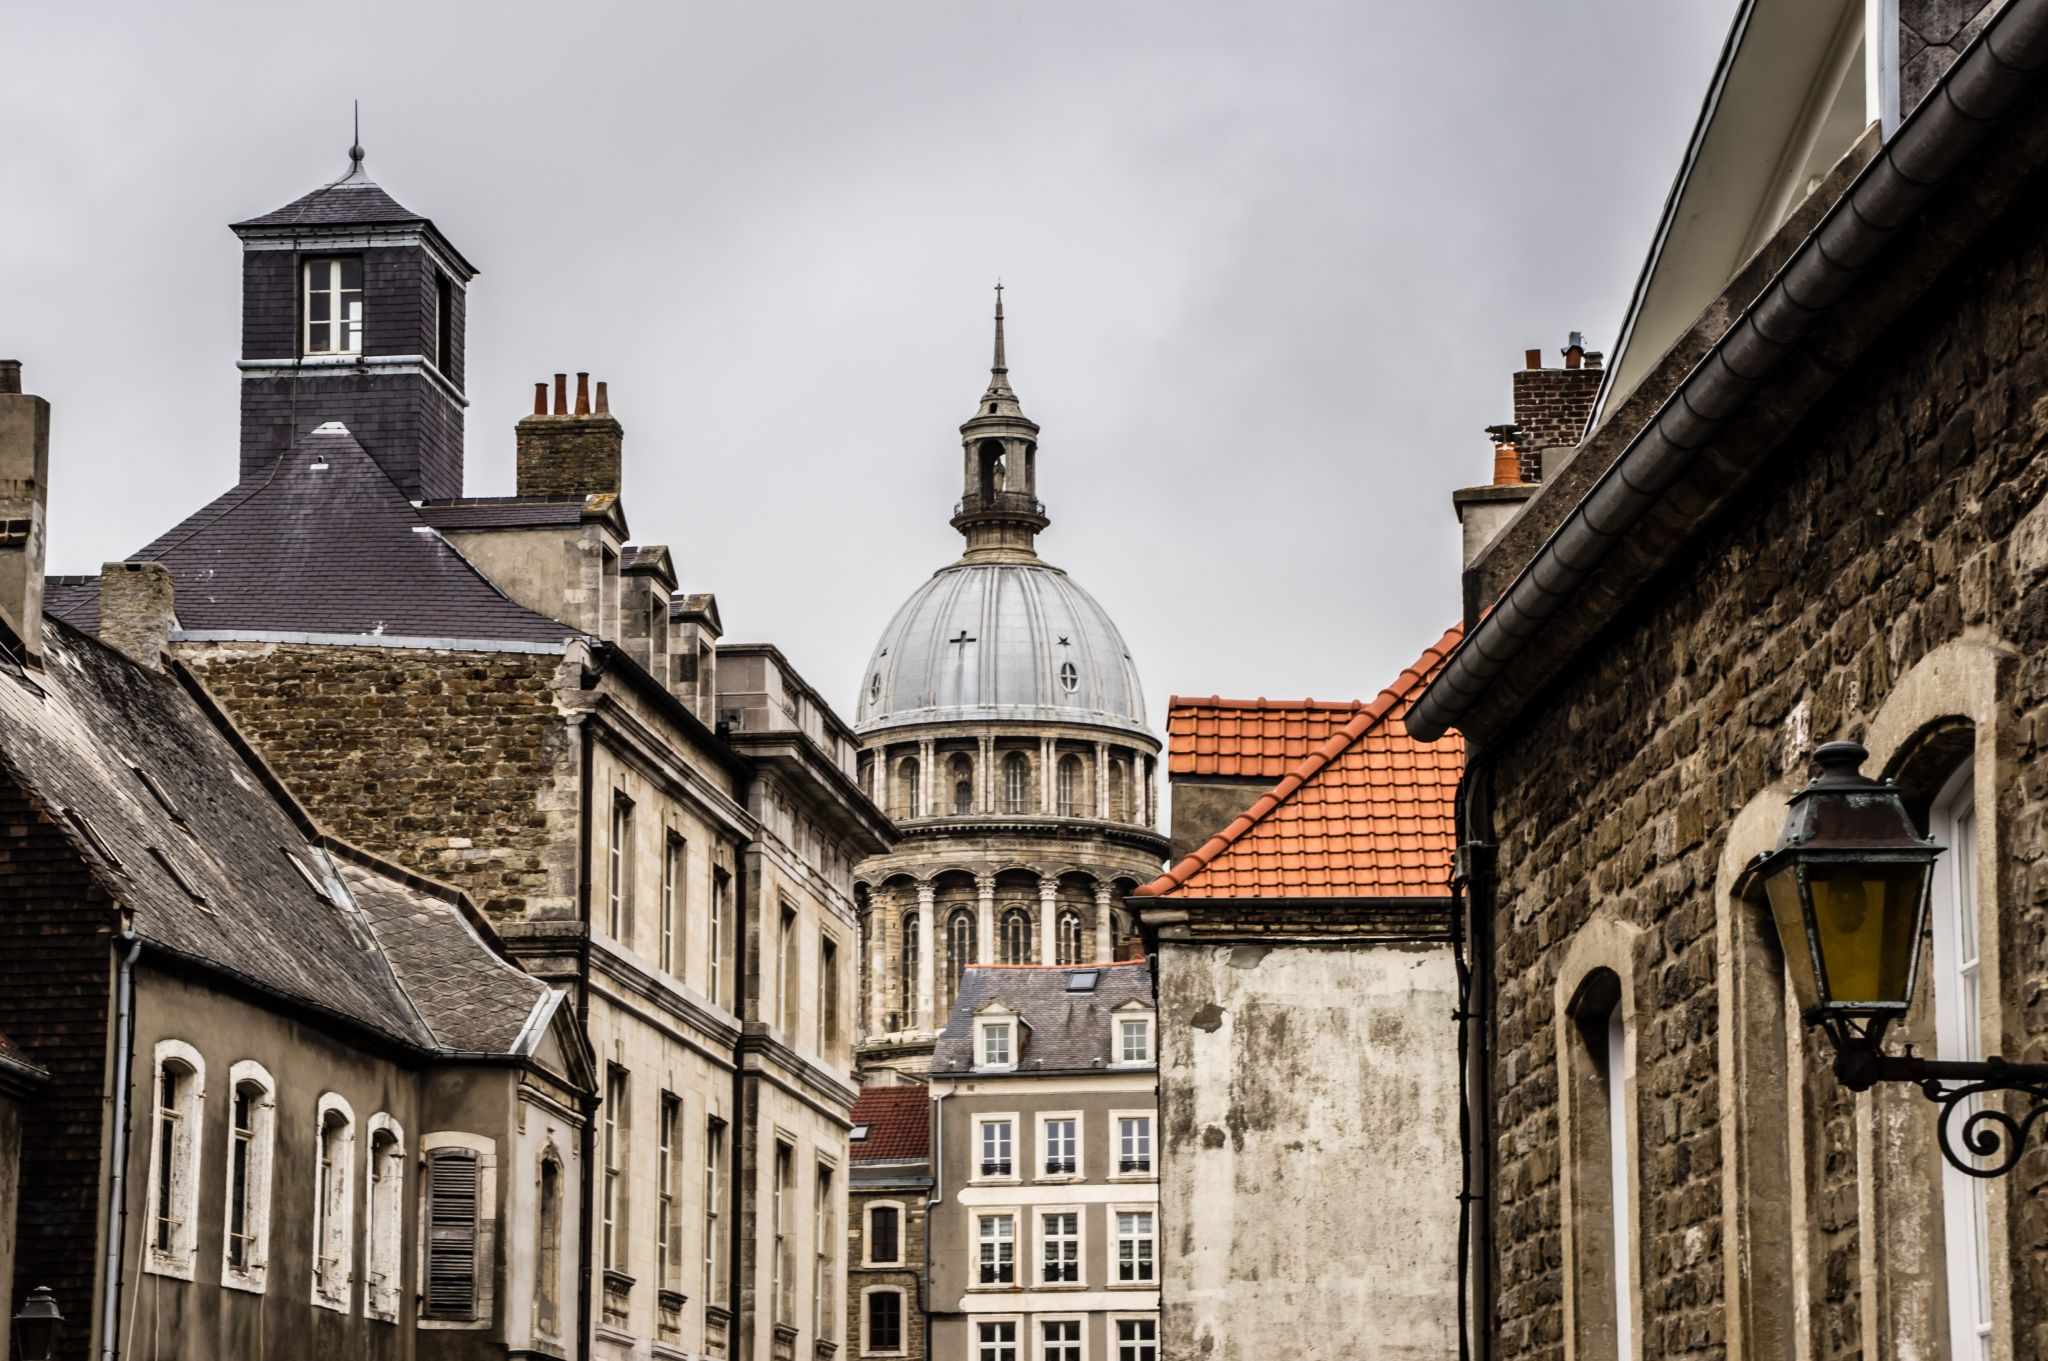 View to the Basilica of Boulogne-sur-Mer, France, France